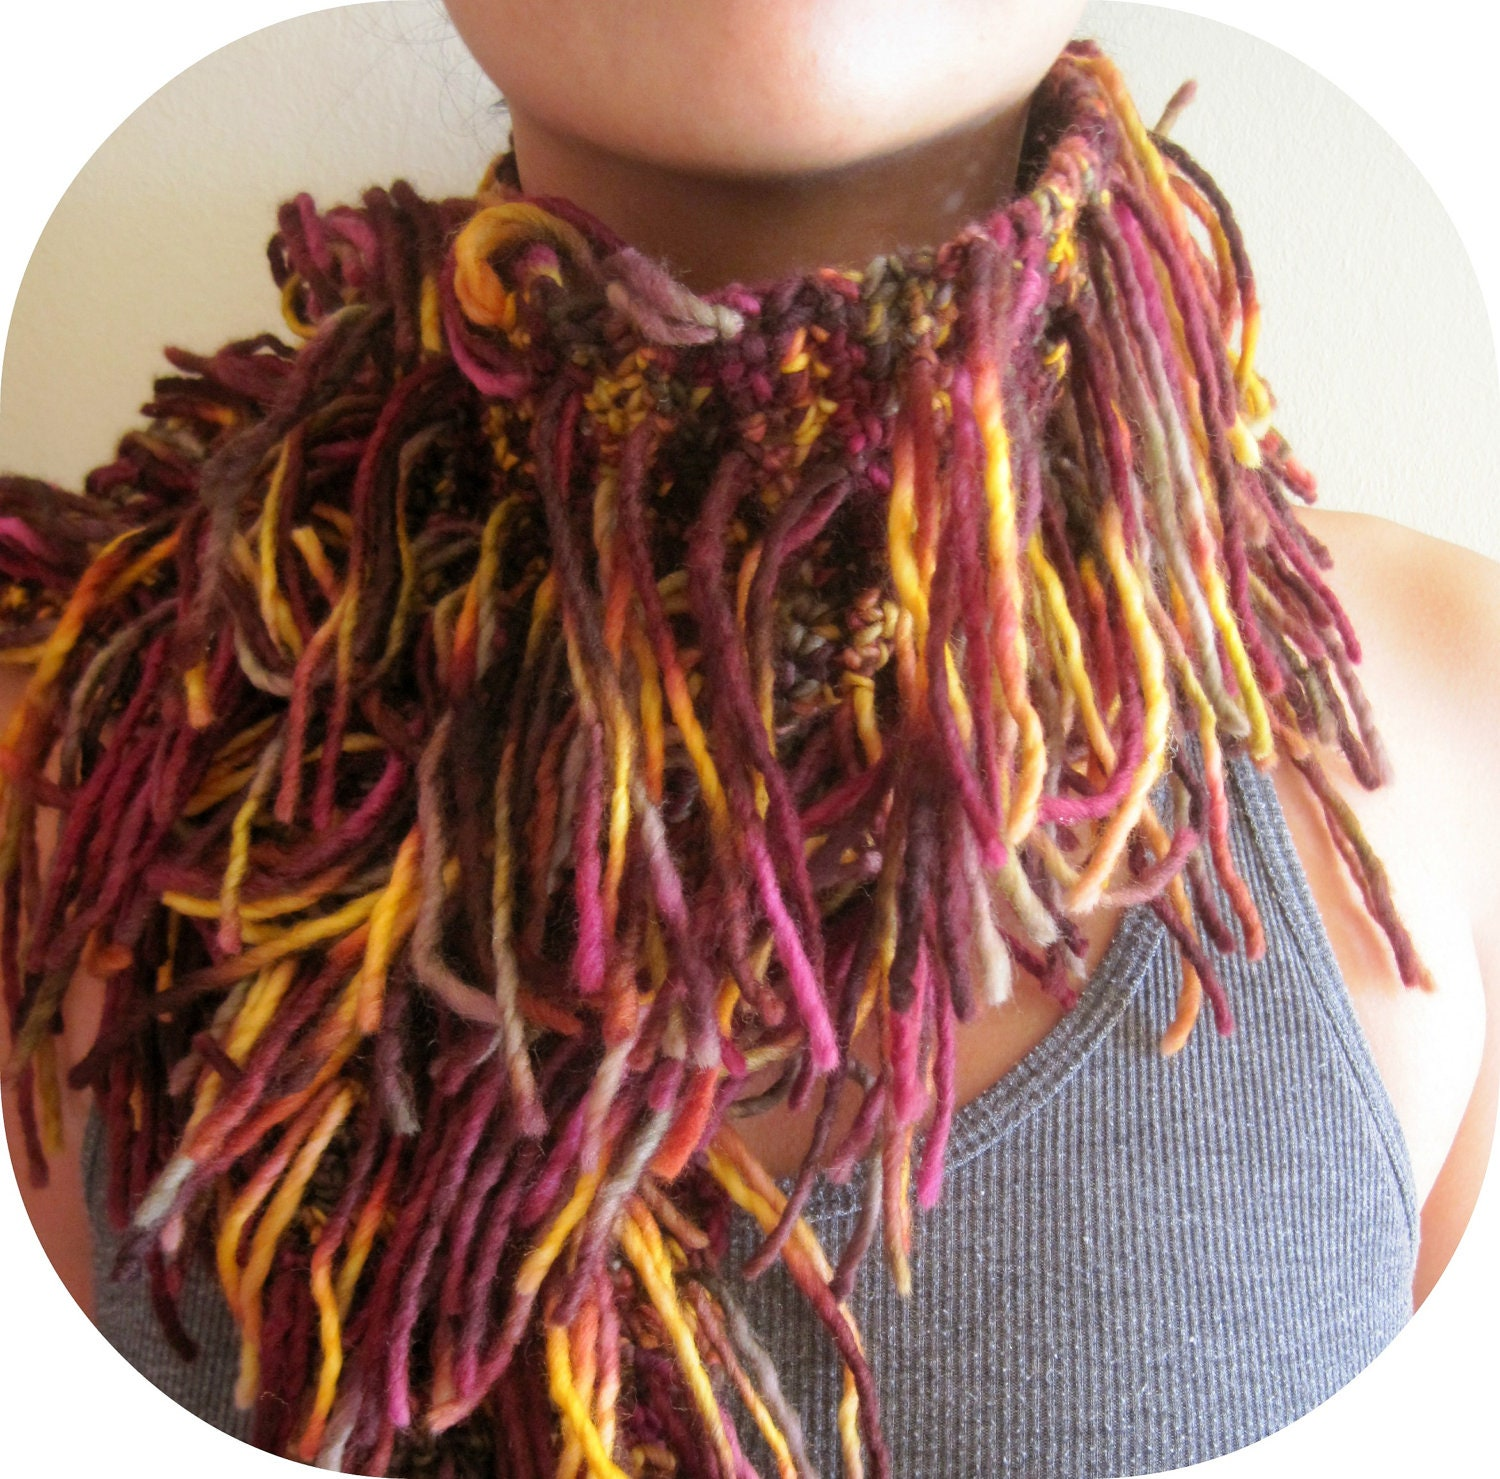 Handmade knitted scarf, multicolor, with multi strands, cozy, warm - YanasKnitting